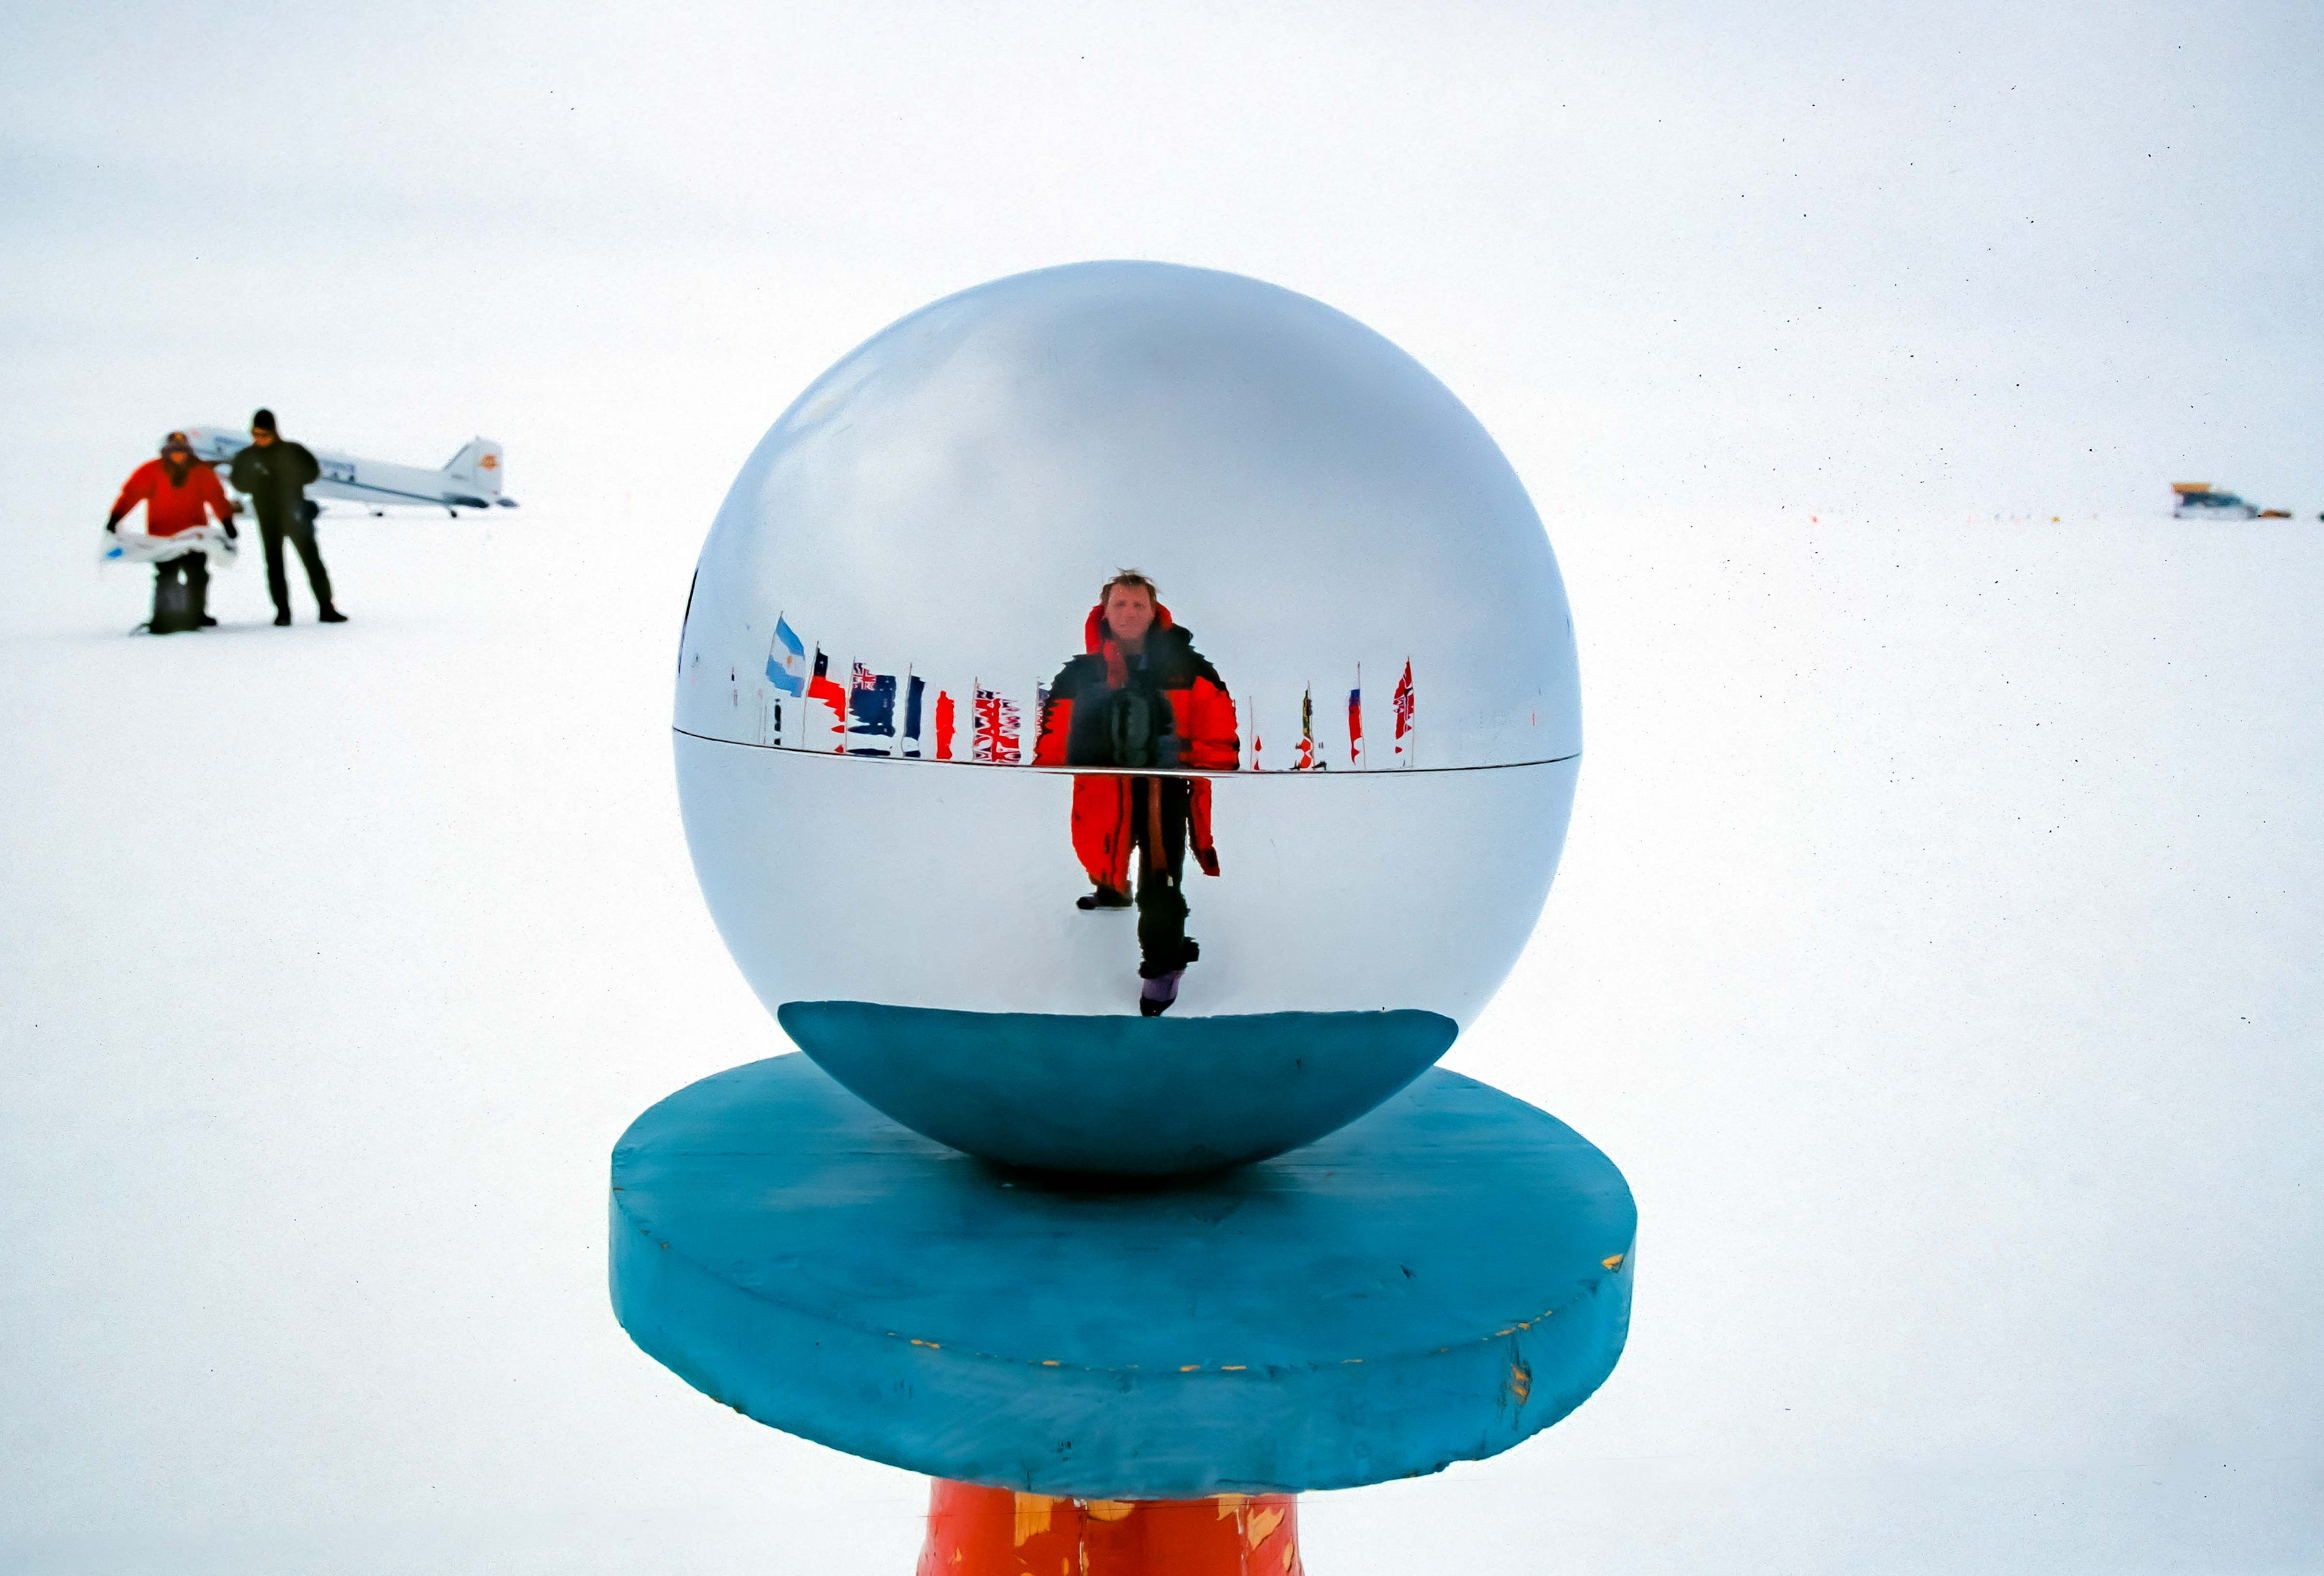 Antarctica, Jeff Shea at South Pole in Globe with Plane, 2001